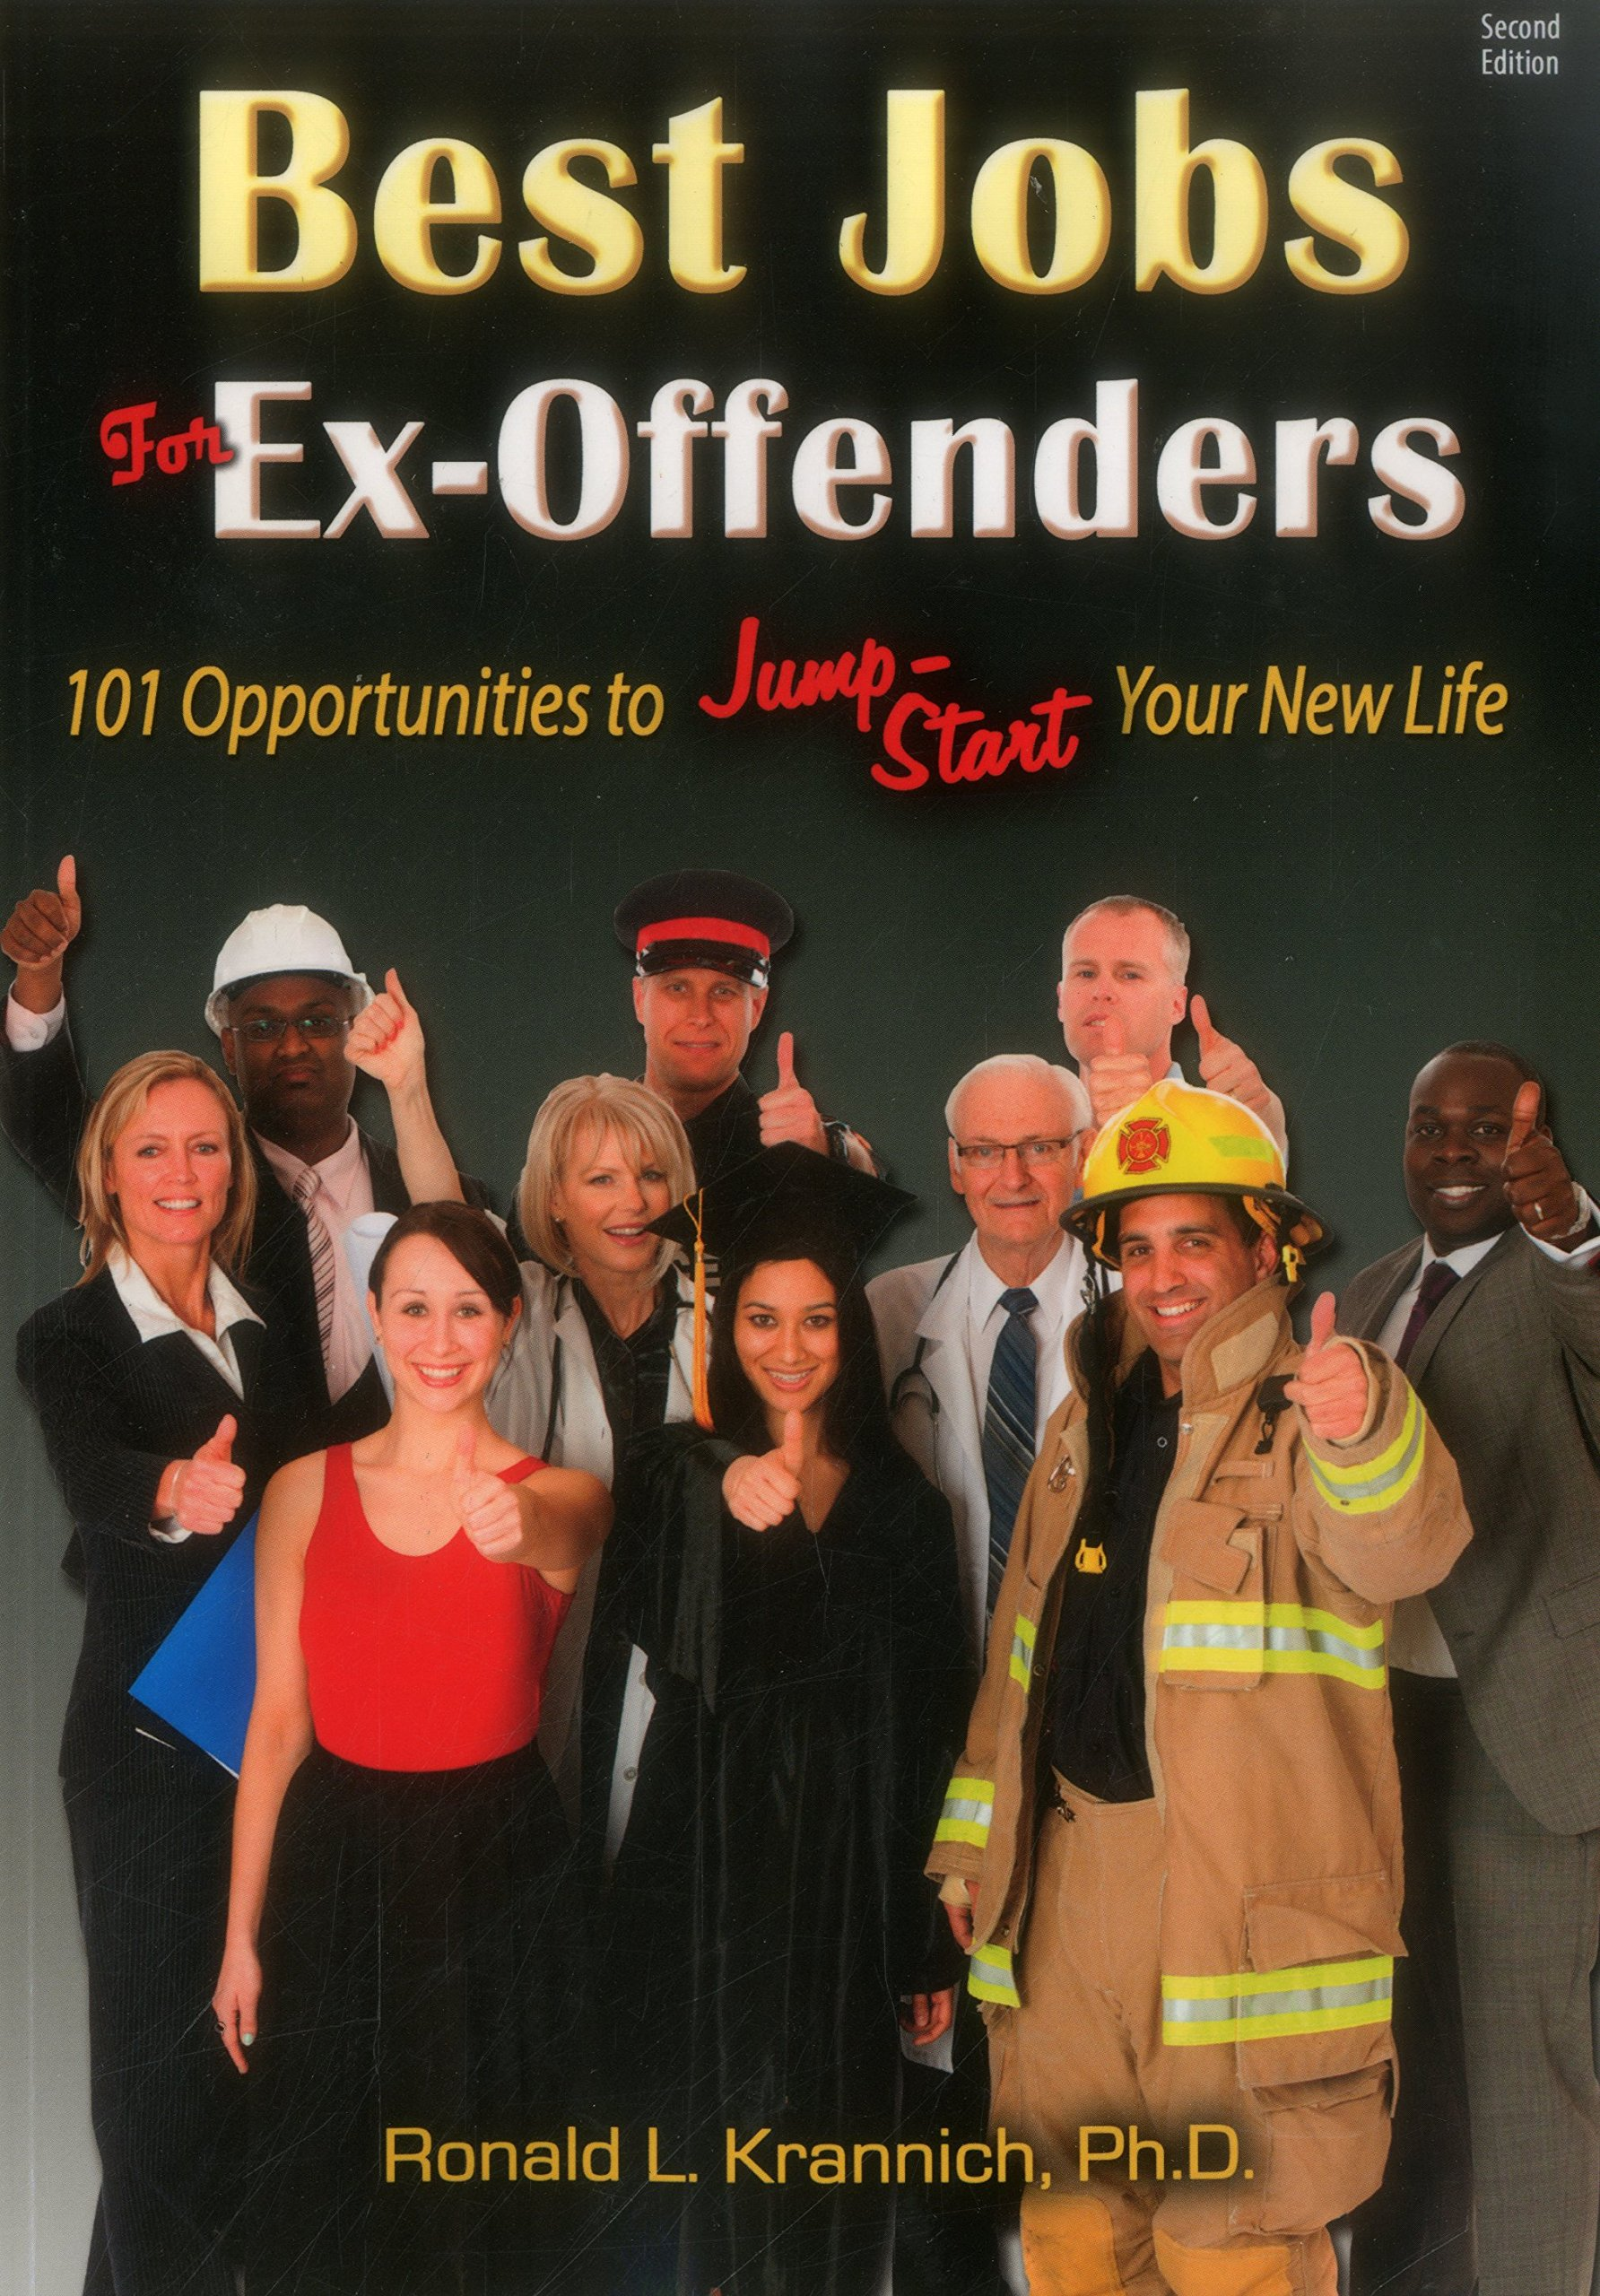 best-jobs-for-ex-offenders-101-opportunities-to-jump-start-your-new-life